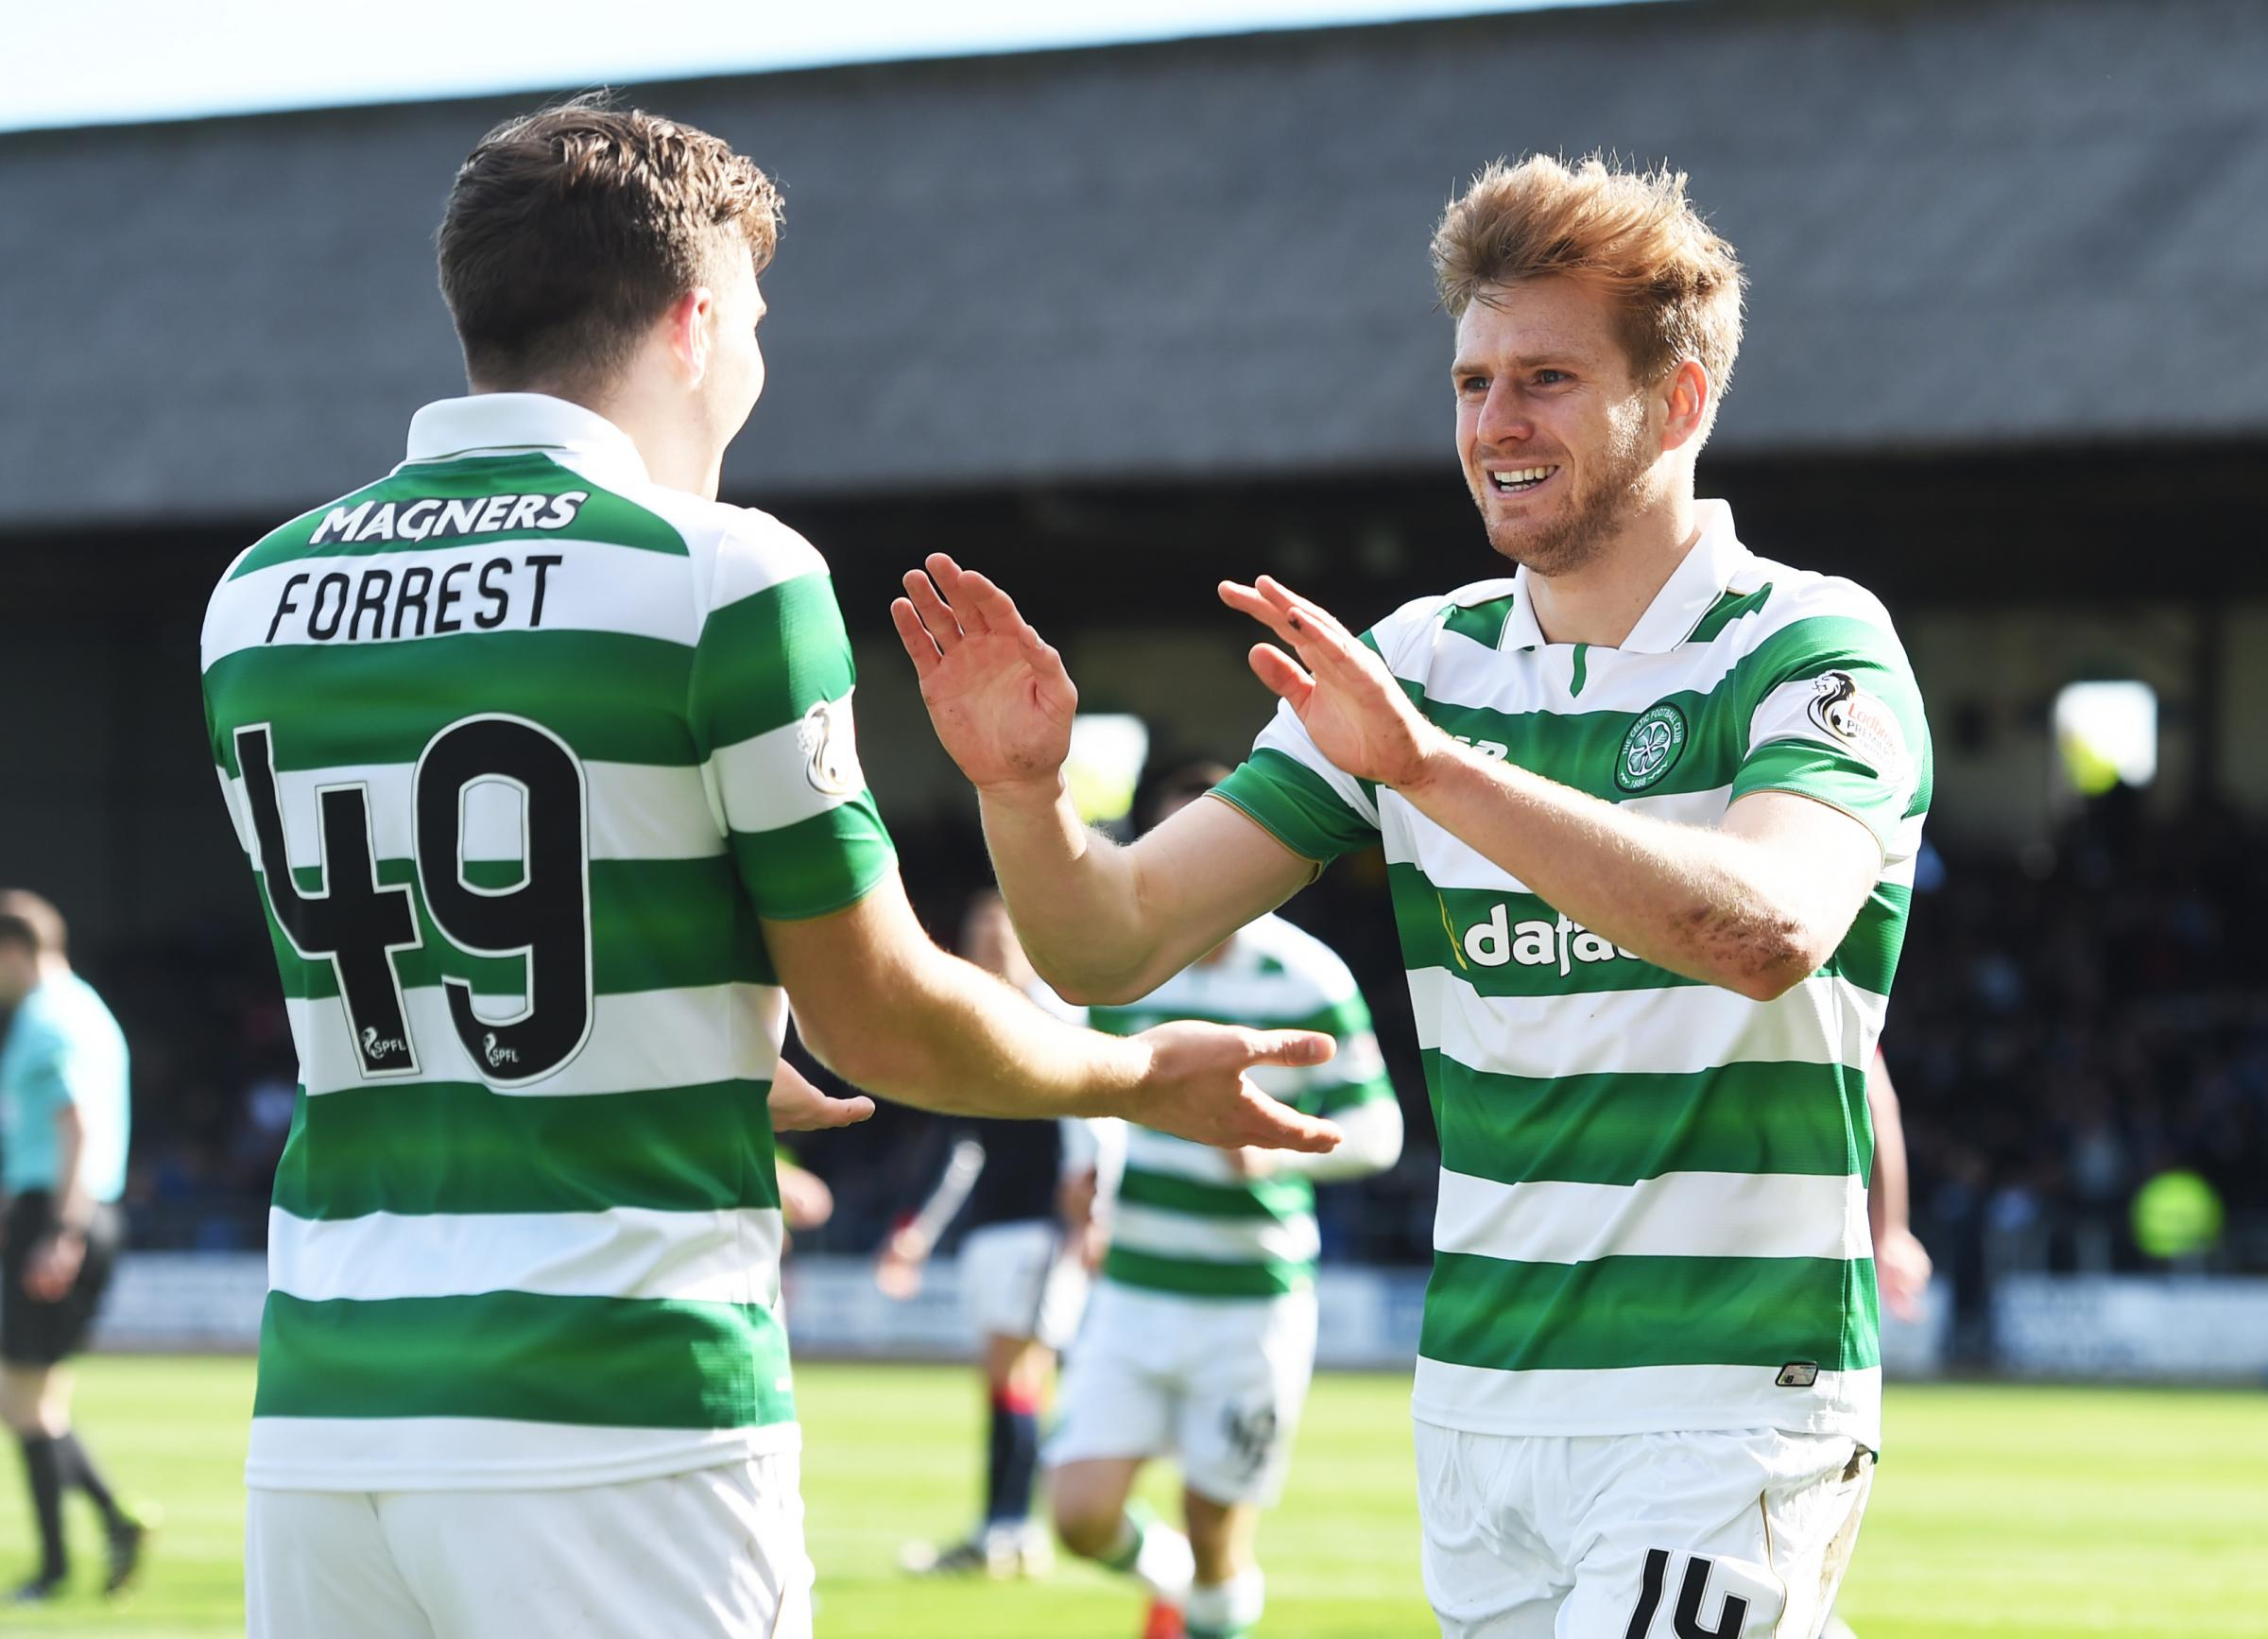 Dundee 1 Celtic 2; Jozo Simunovic and Stuart Armstrong goals take Celtic to brink of Scottish title